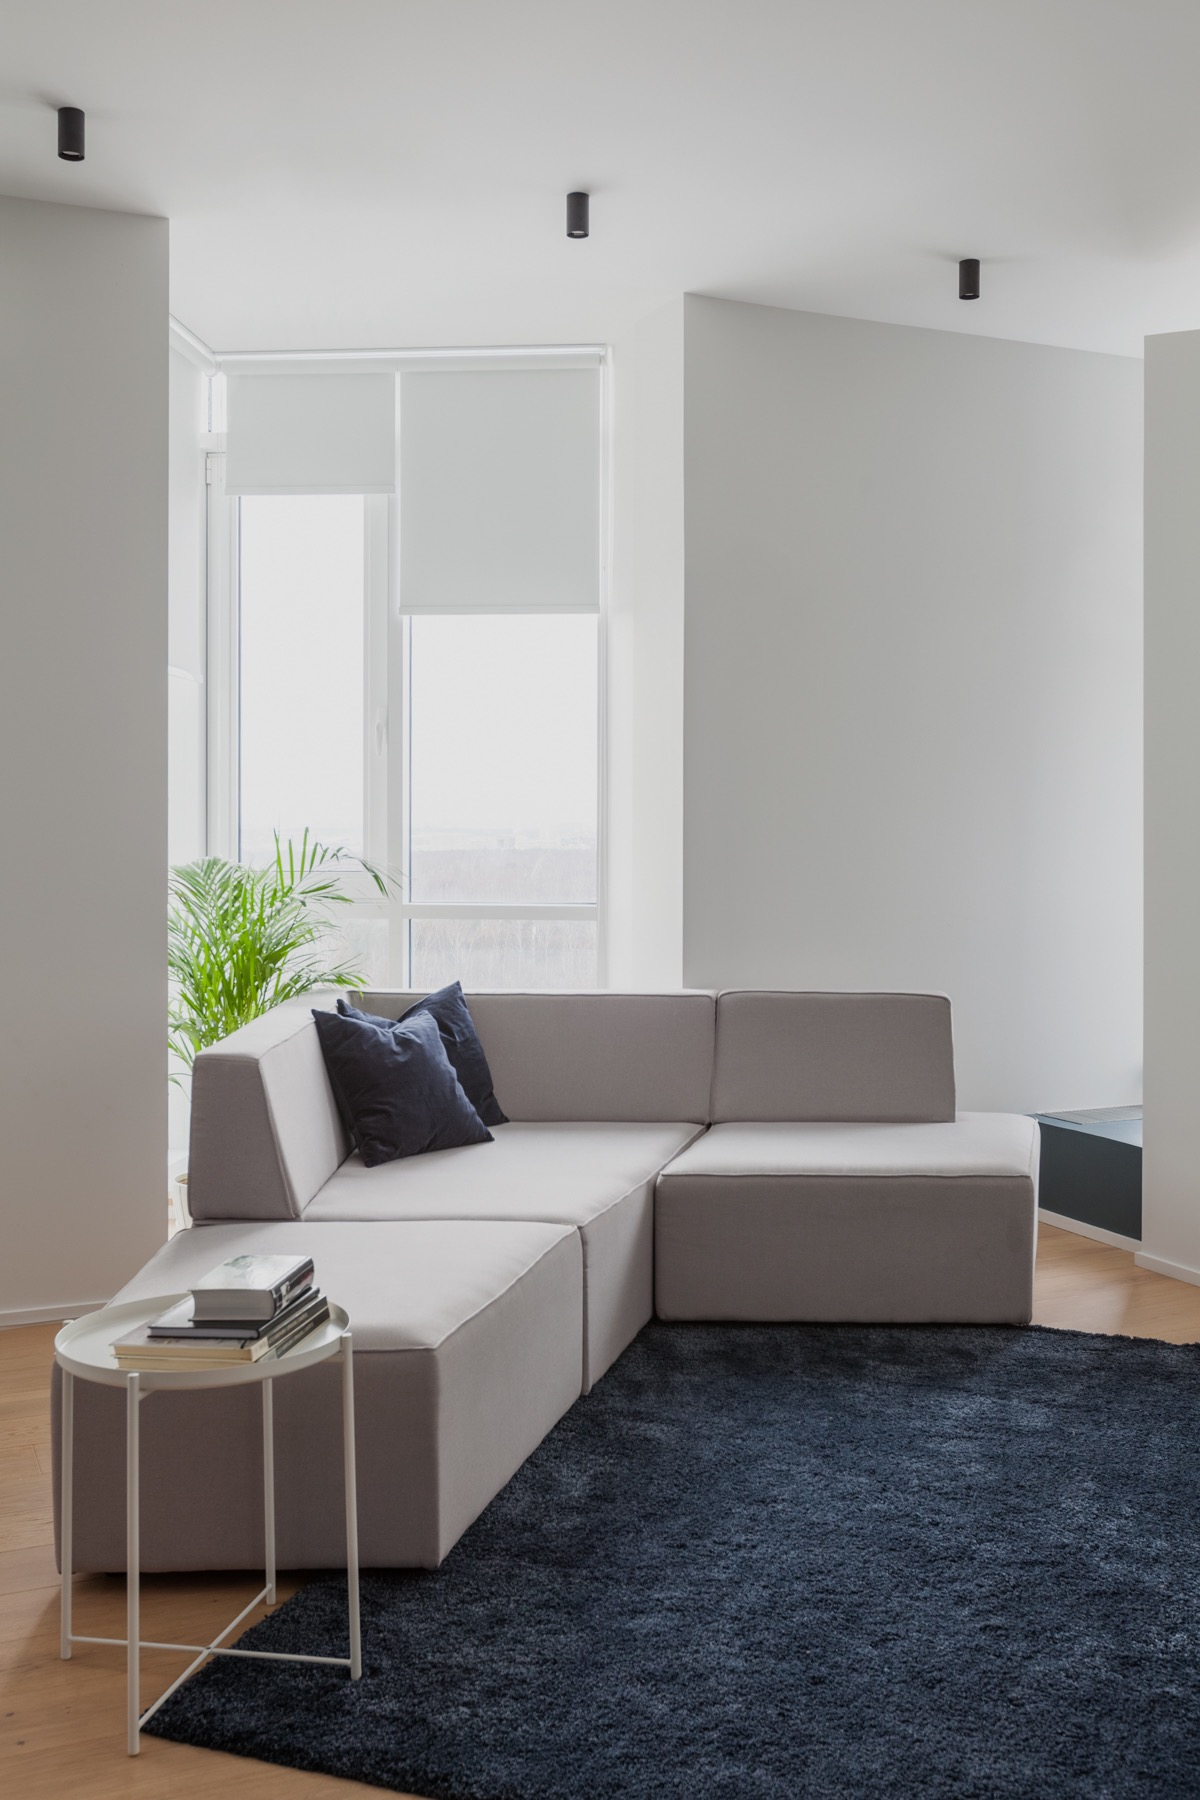 An Apartment With A Complex Geometry images 5